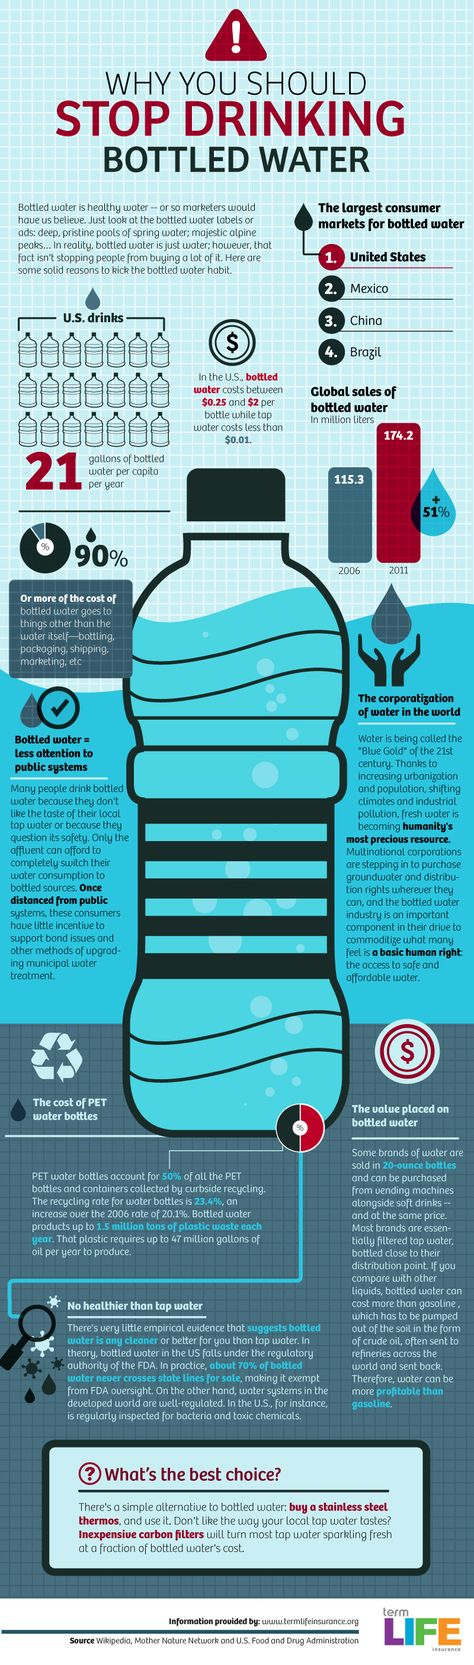 why water is precious Produced by kāpiti coast district council wwwkapiticoastgovtnz 2 water is precious — every drop counts water is precious — every drop counts.